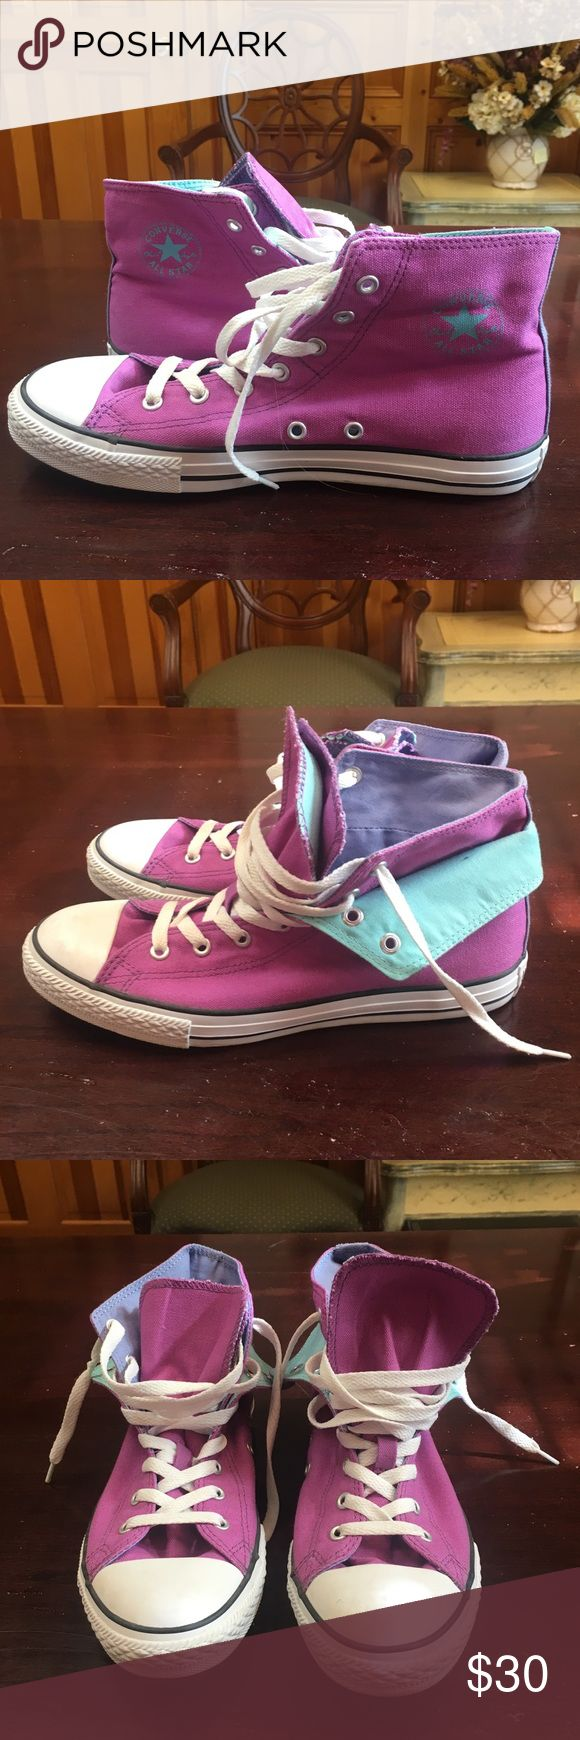 25 cute converse chart ideas on pinterest converse shoes converse chuck taylor all star double t trainers converse chuck taylor all star double tongue nvjuhfo Gallery